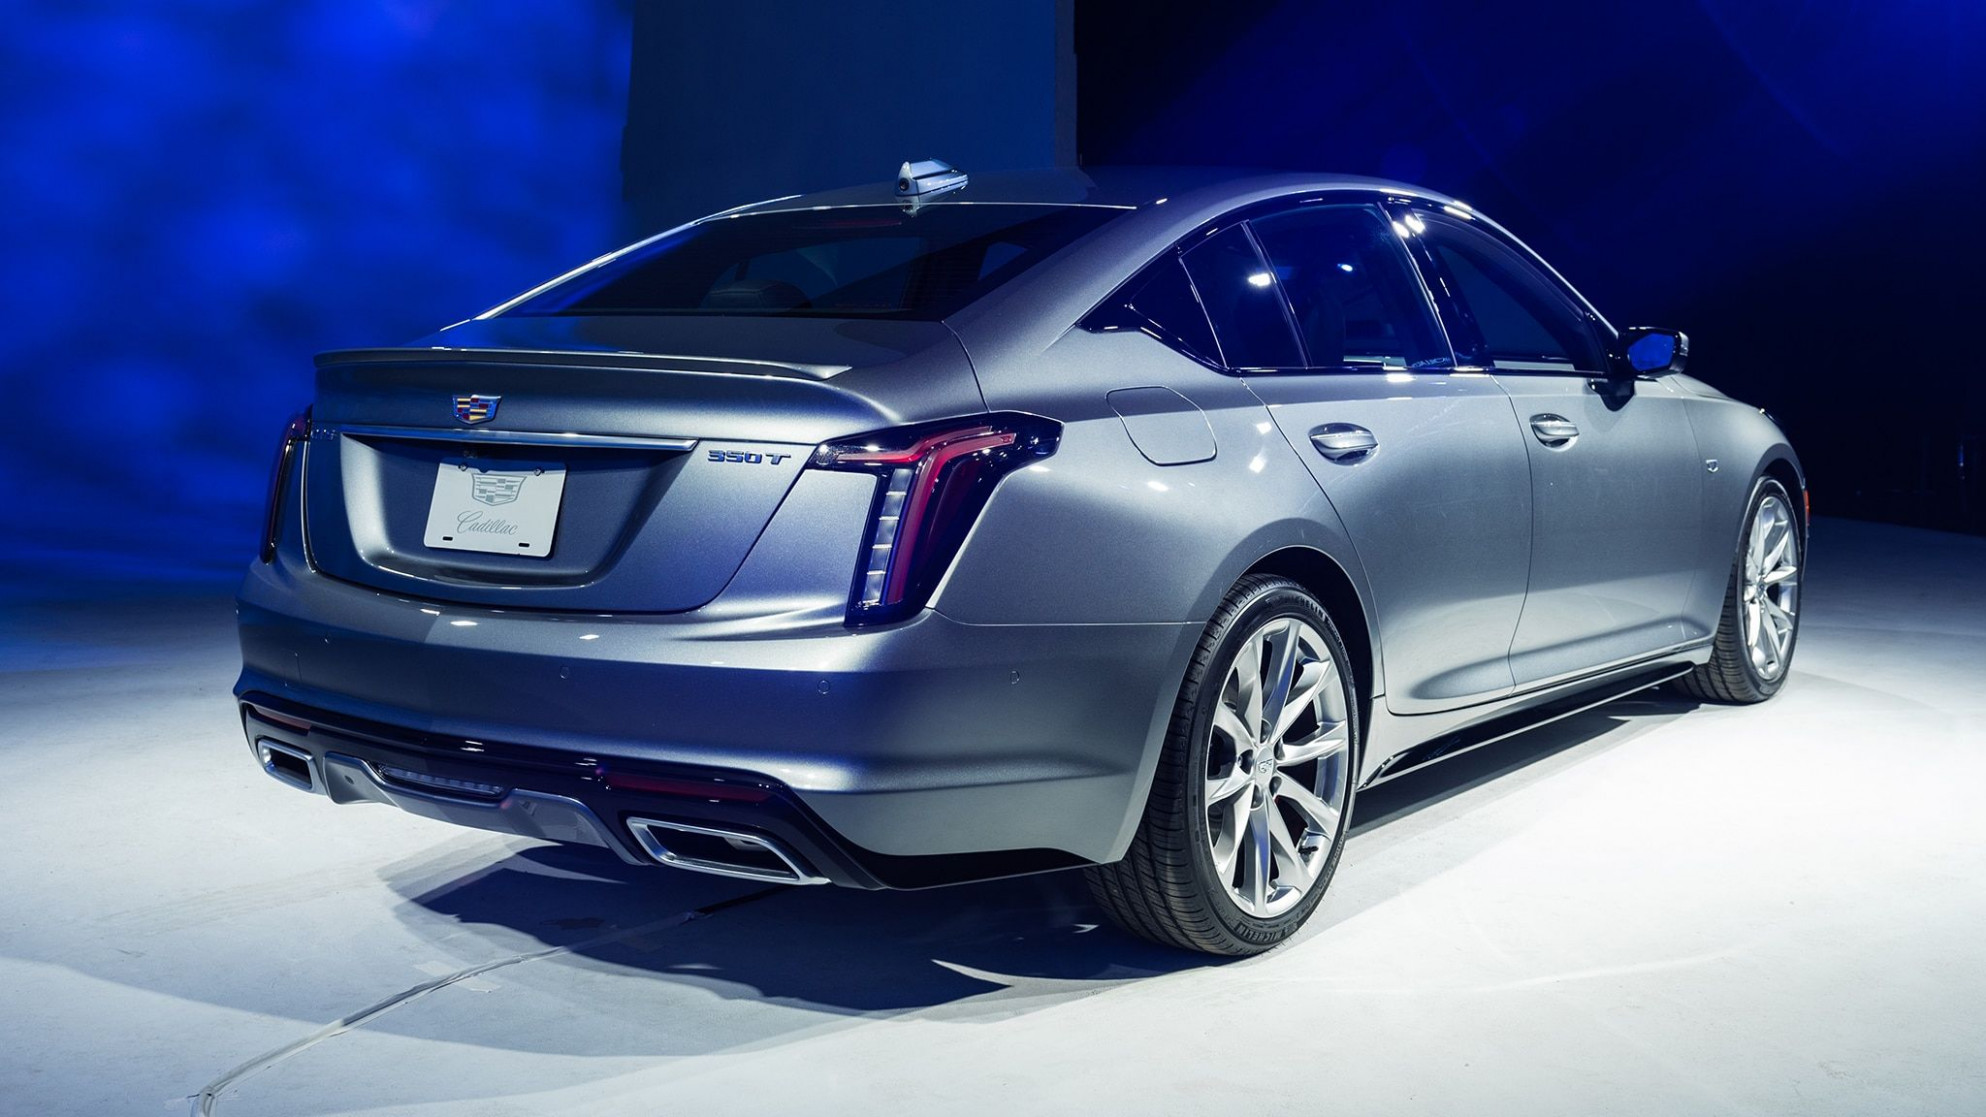 cadillac ats 8 Picture 8*8 - cadillac ats 8 Release Date ..